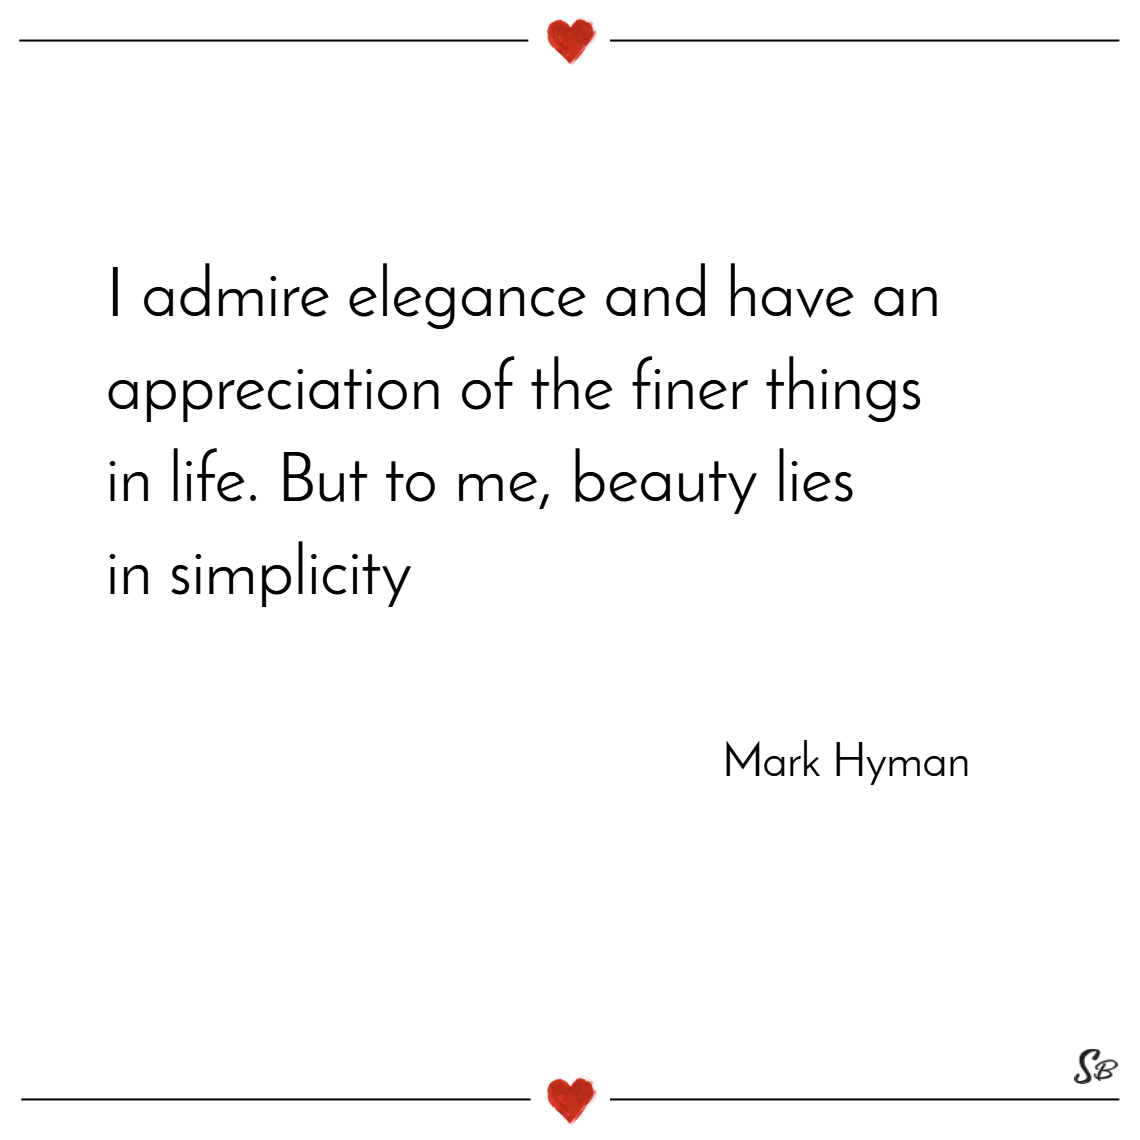 I admire elegance and have an appreciation of the finer things in life. but to me, beauty lies in simplicity. – mark hyman